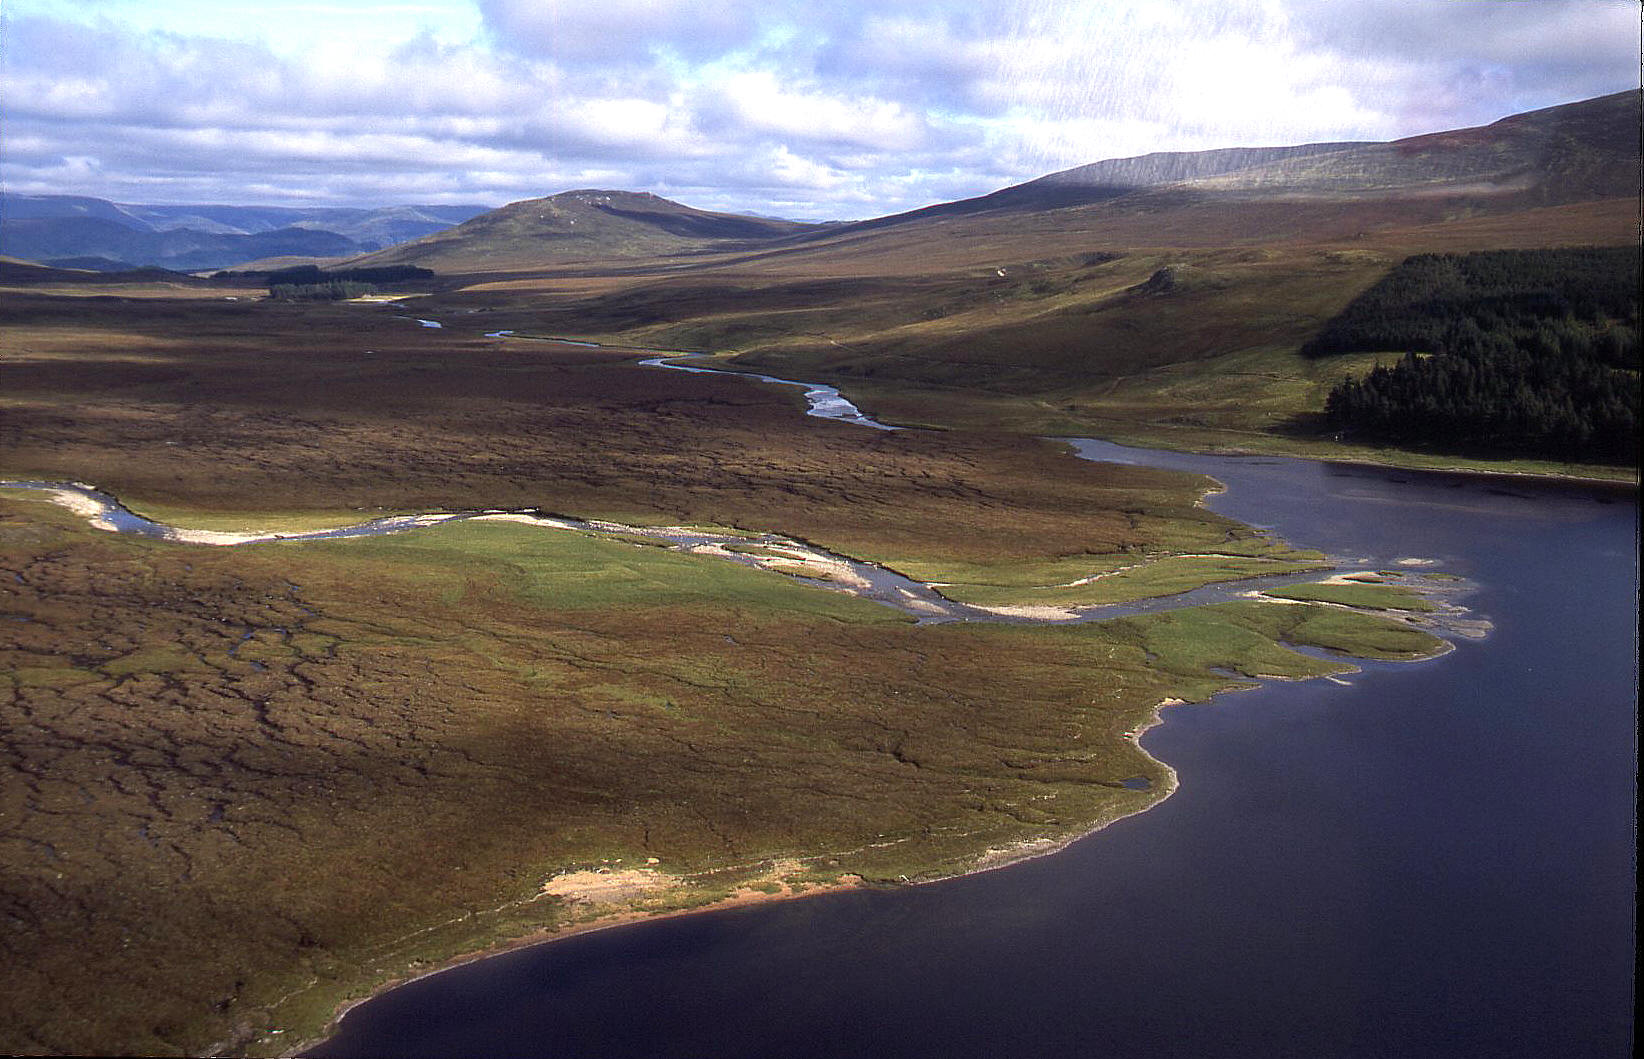 The view looking north from Loch Pattack. The smallest Loch landed on in 2002